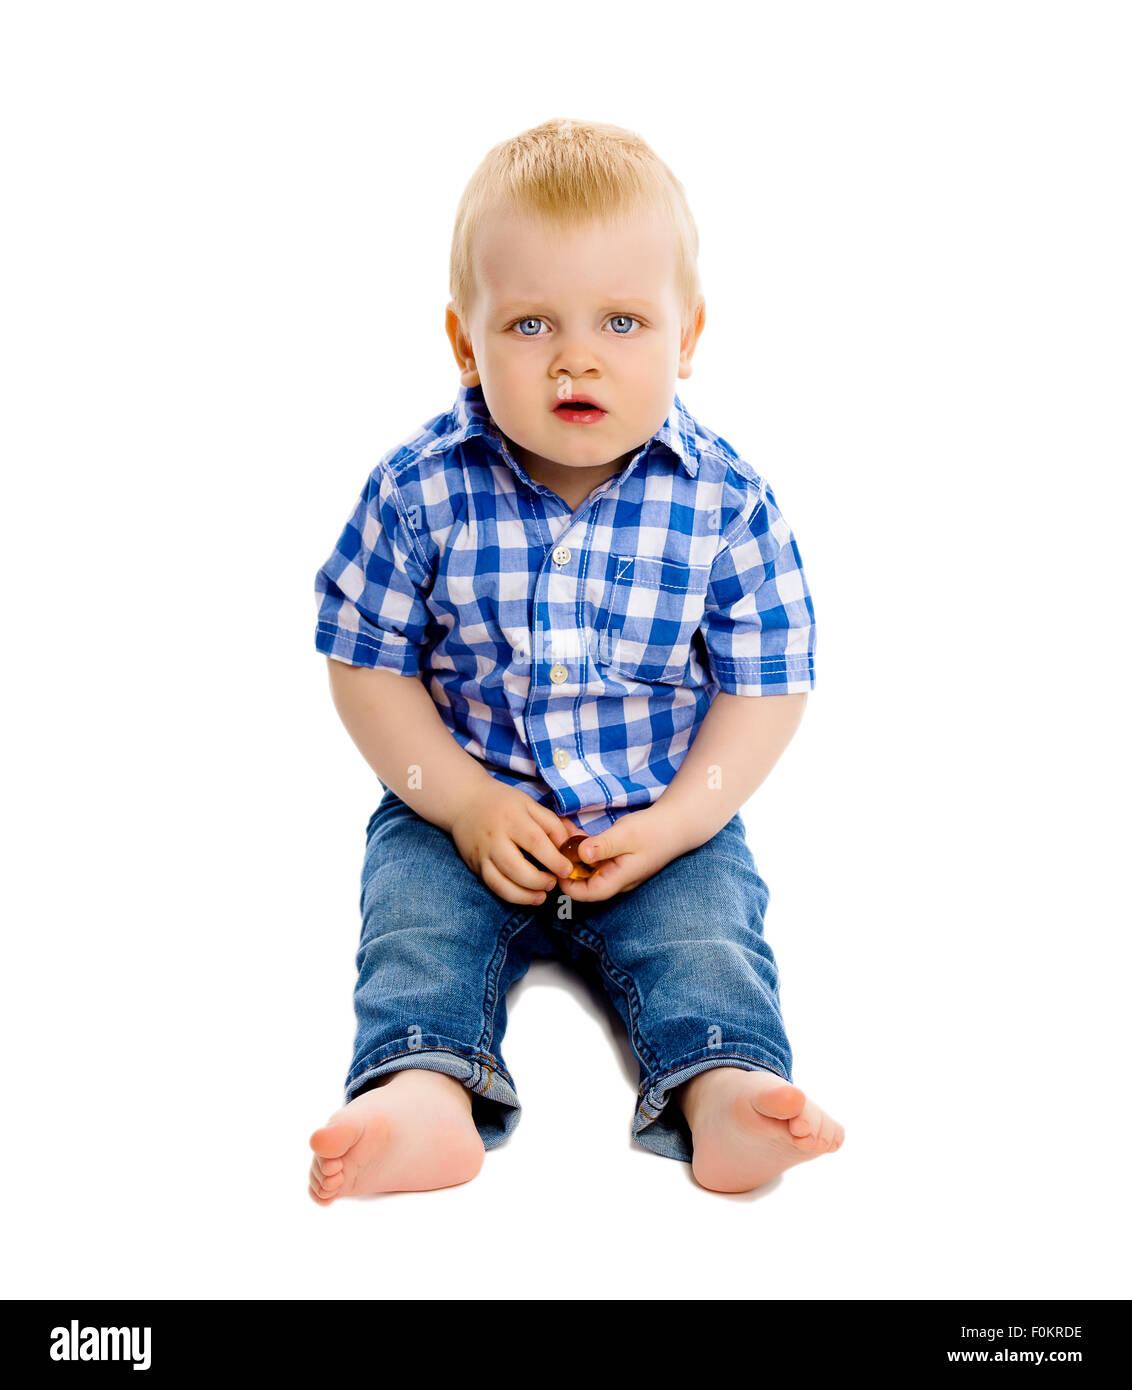 Little dissatisfied boy in a plaid shirt and jeans on white background - Stock Image